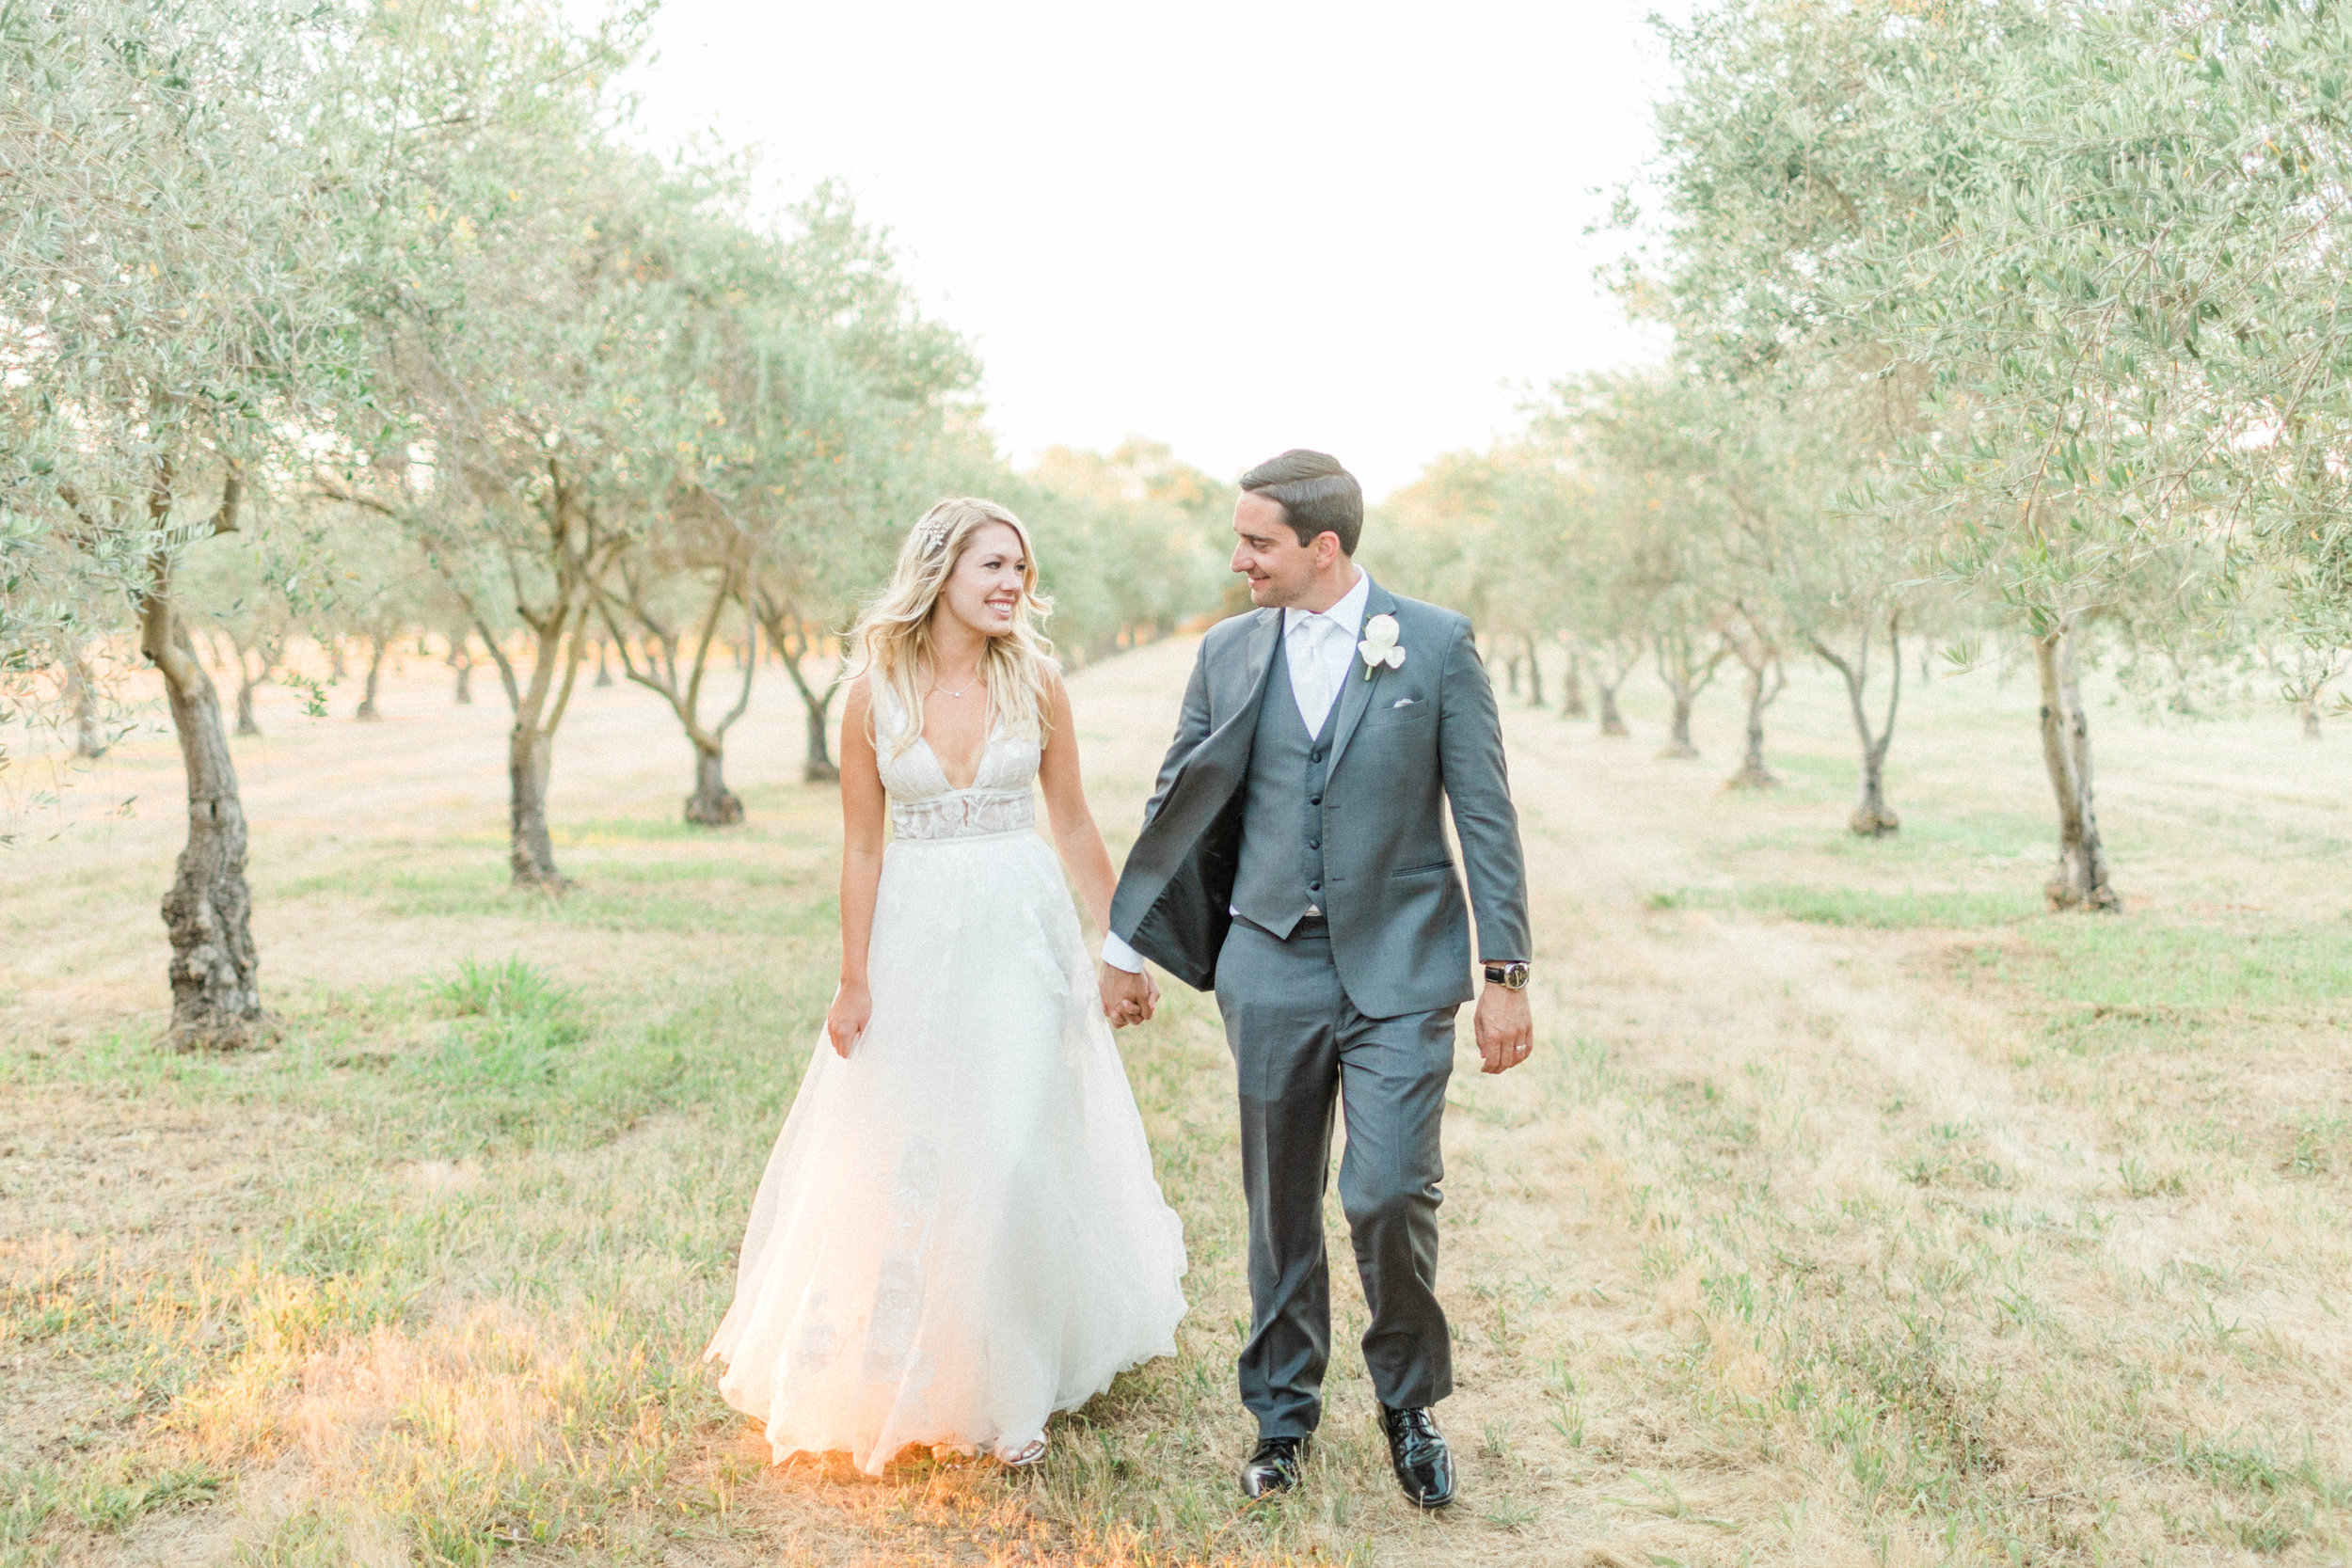 Summer and Andrew - Sneak Peeks - Lauren Alisse Photography-62.jpg